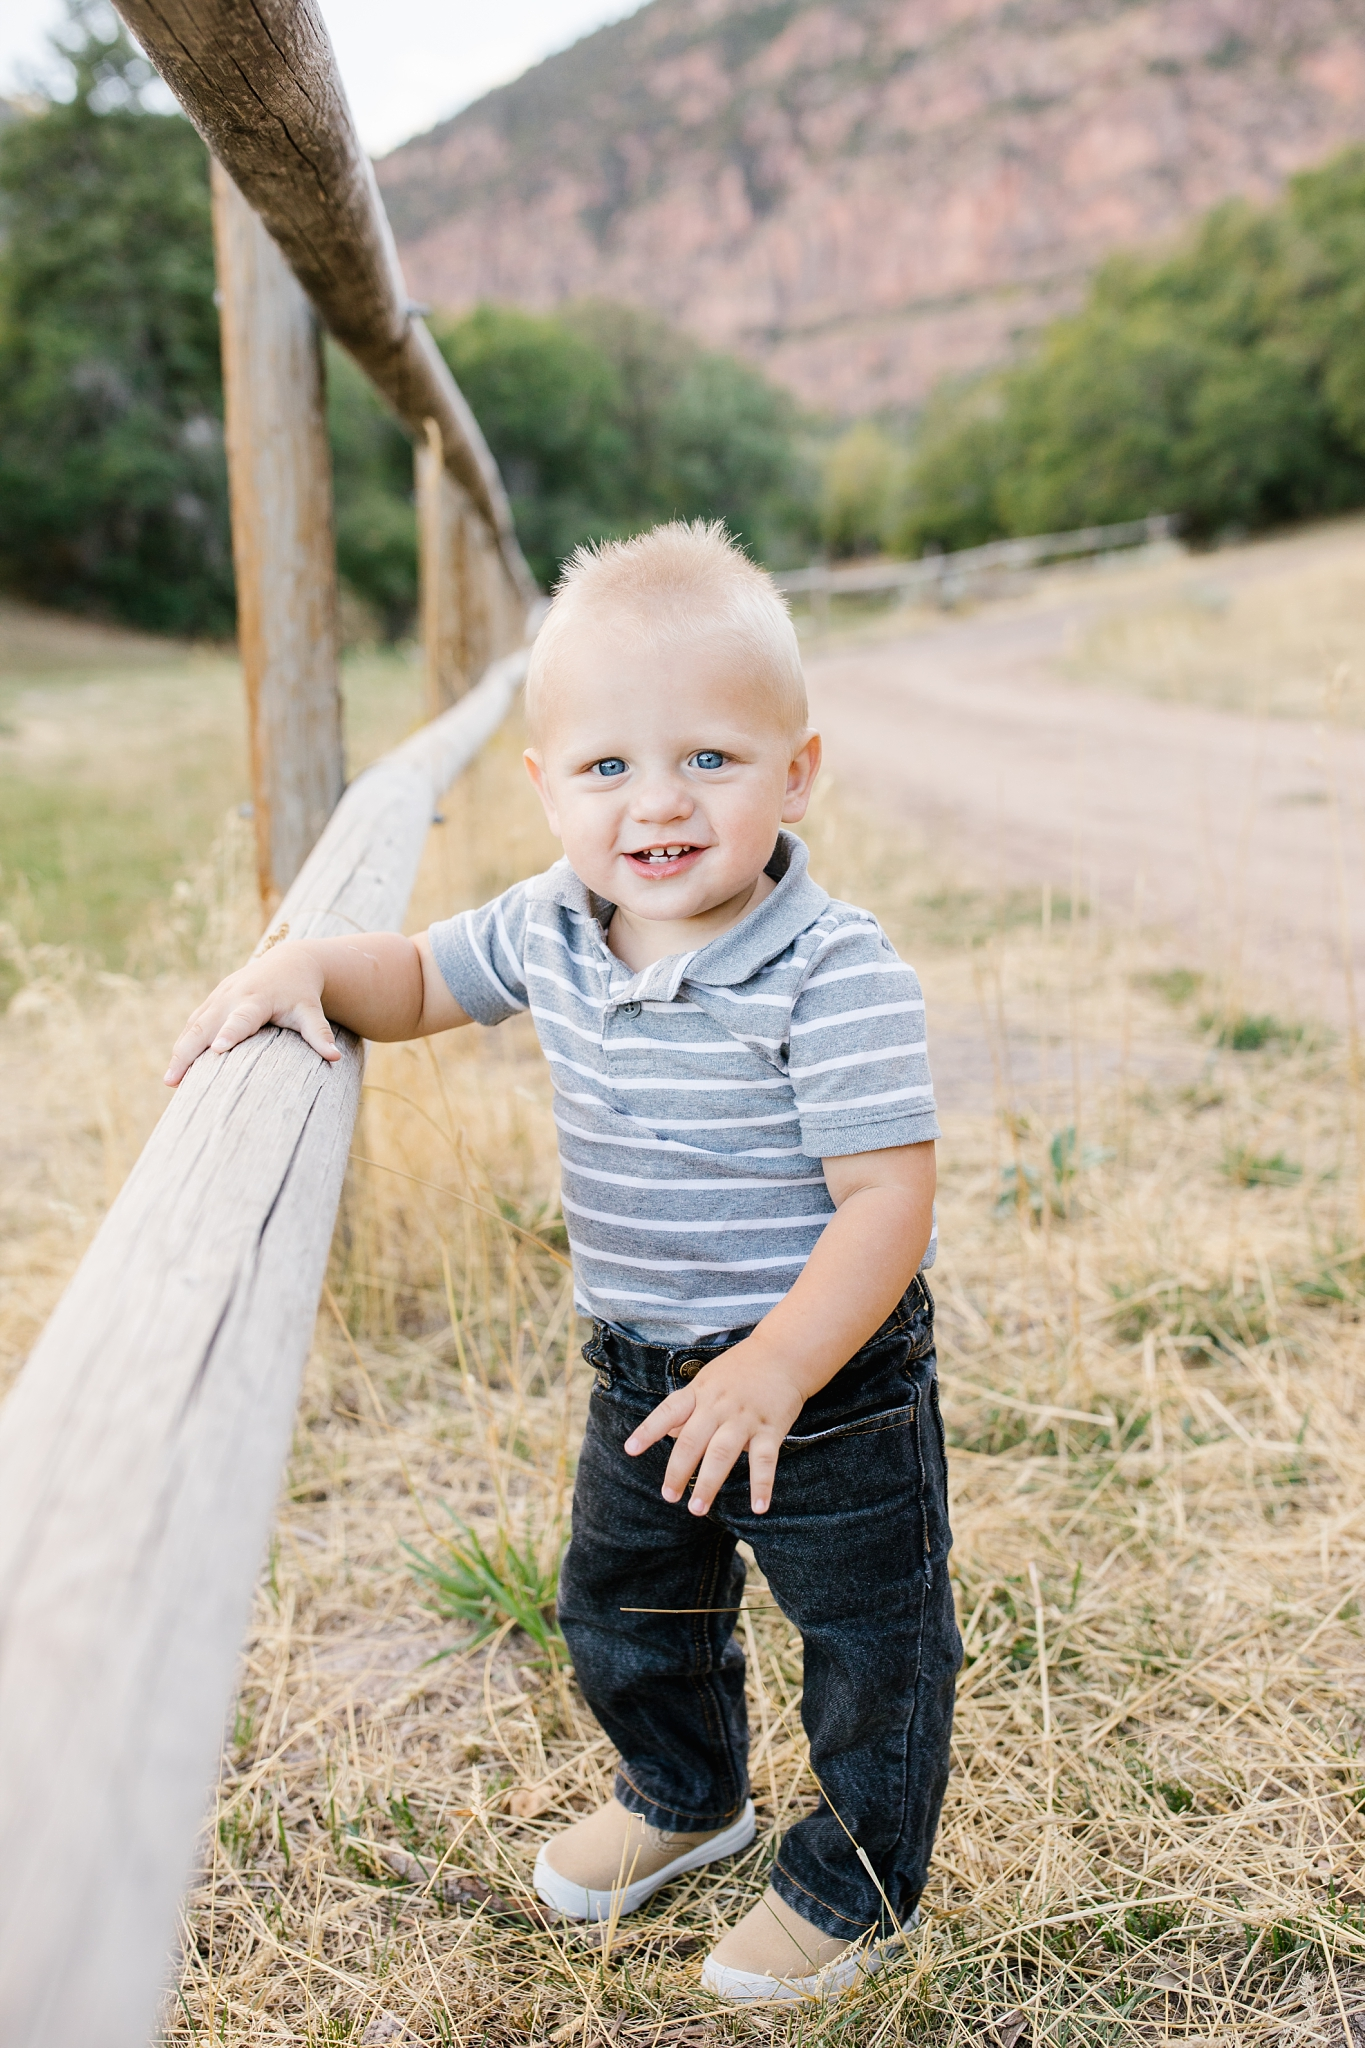 Hatch-92_Lizzie-B-Imagery-Utah-Family-Photographer-Lifestyle-Photography-Salt-Lake-City-Park-City-Utah-County.jpg